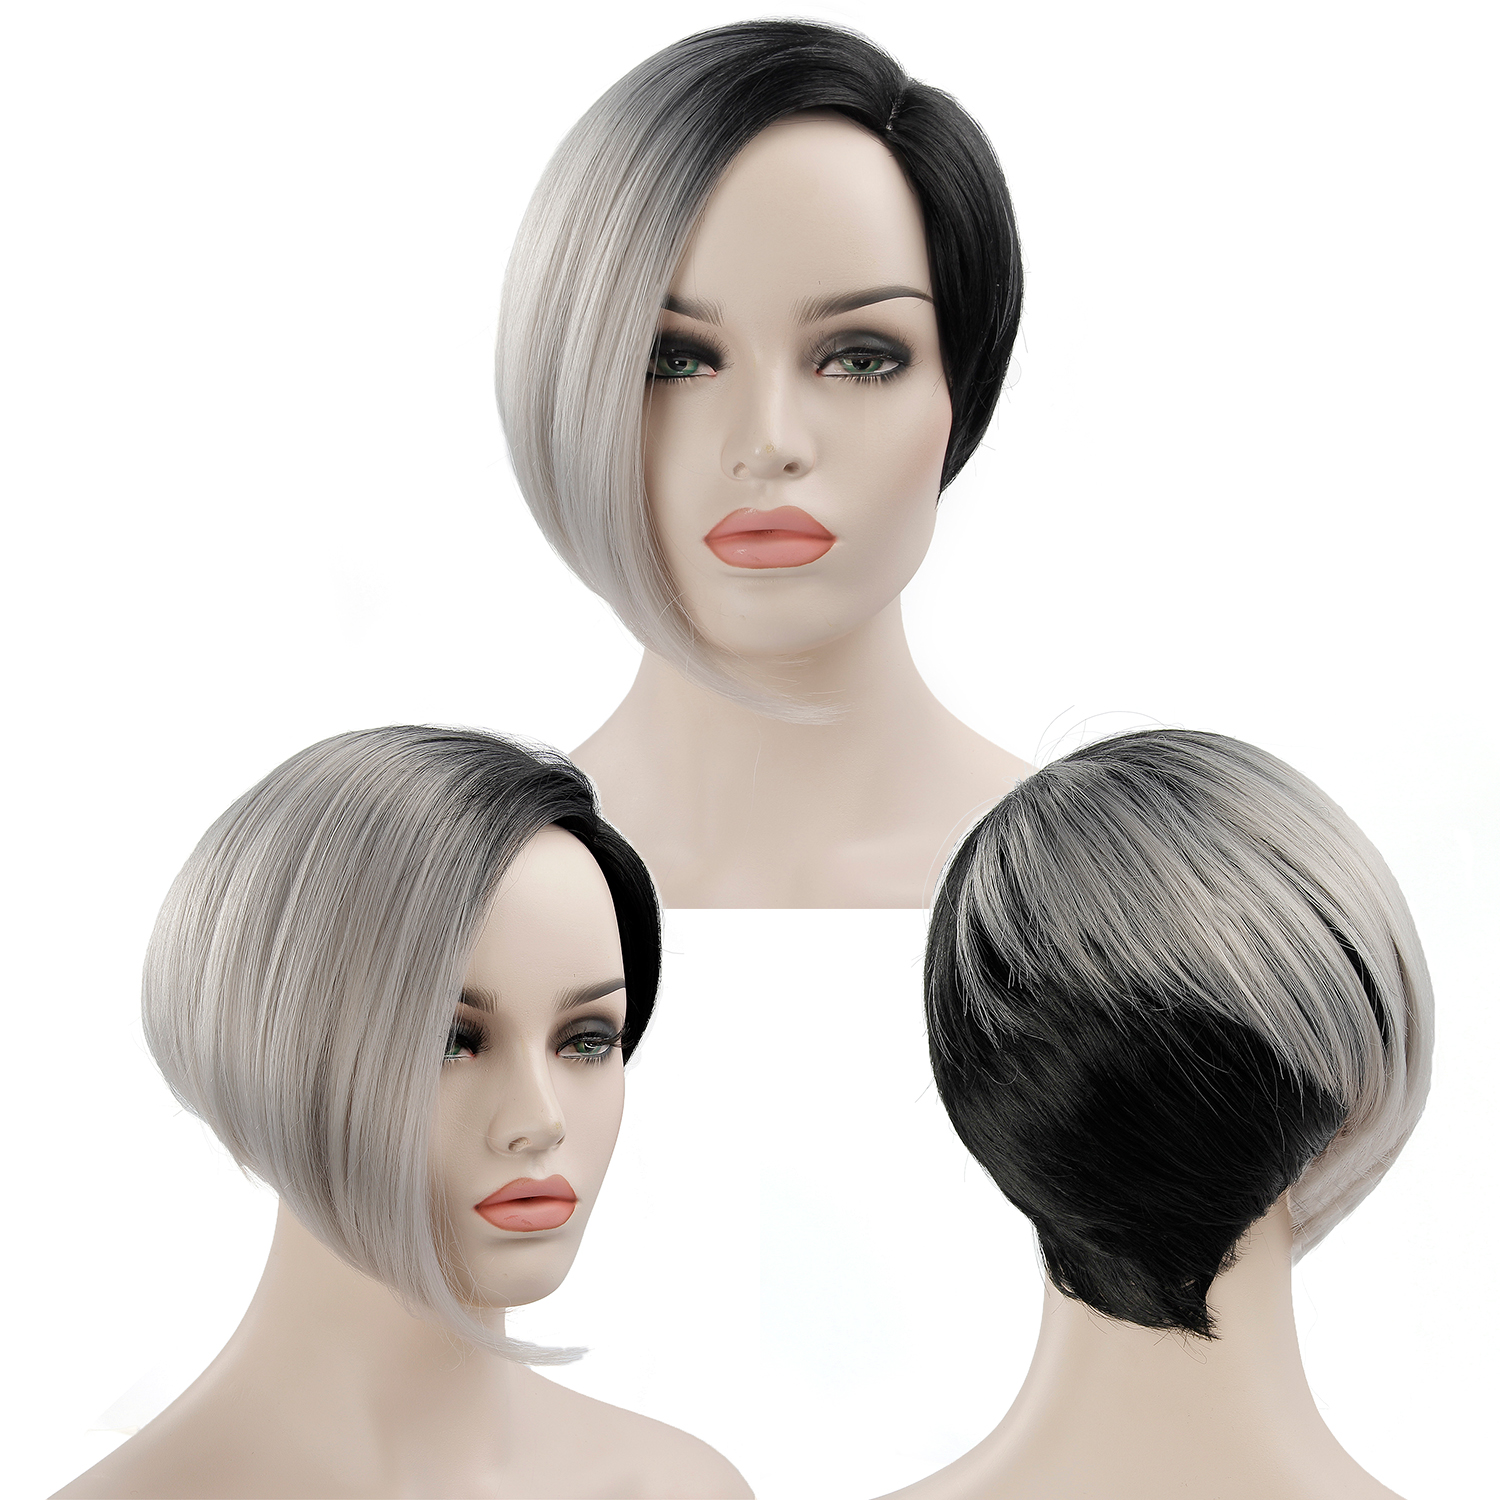 Short Black Wigs For Women Synthetic Hair Wigs Female Heat Resistant Fiber Color Ombre Grey Wig Cosplay